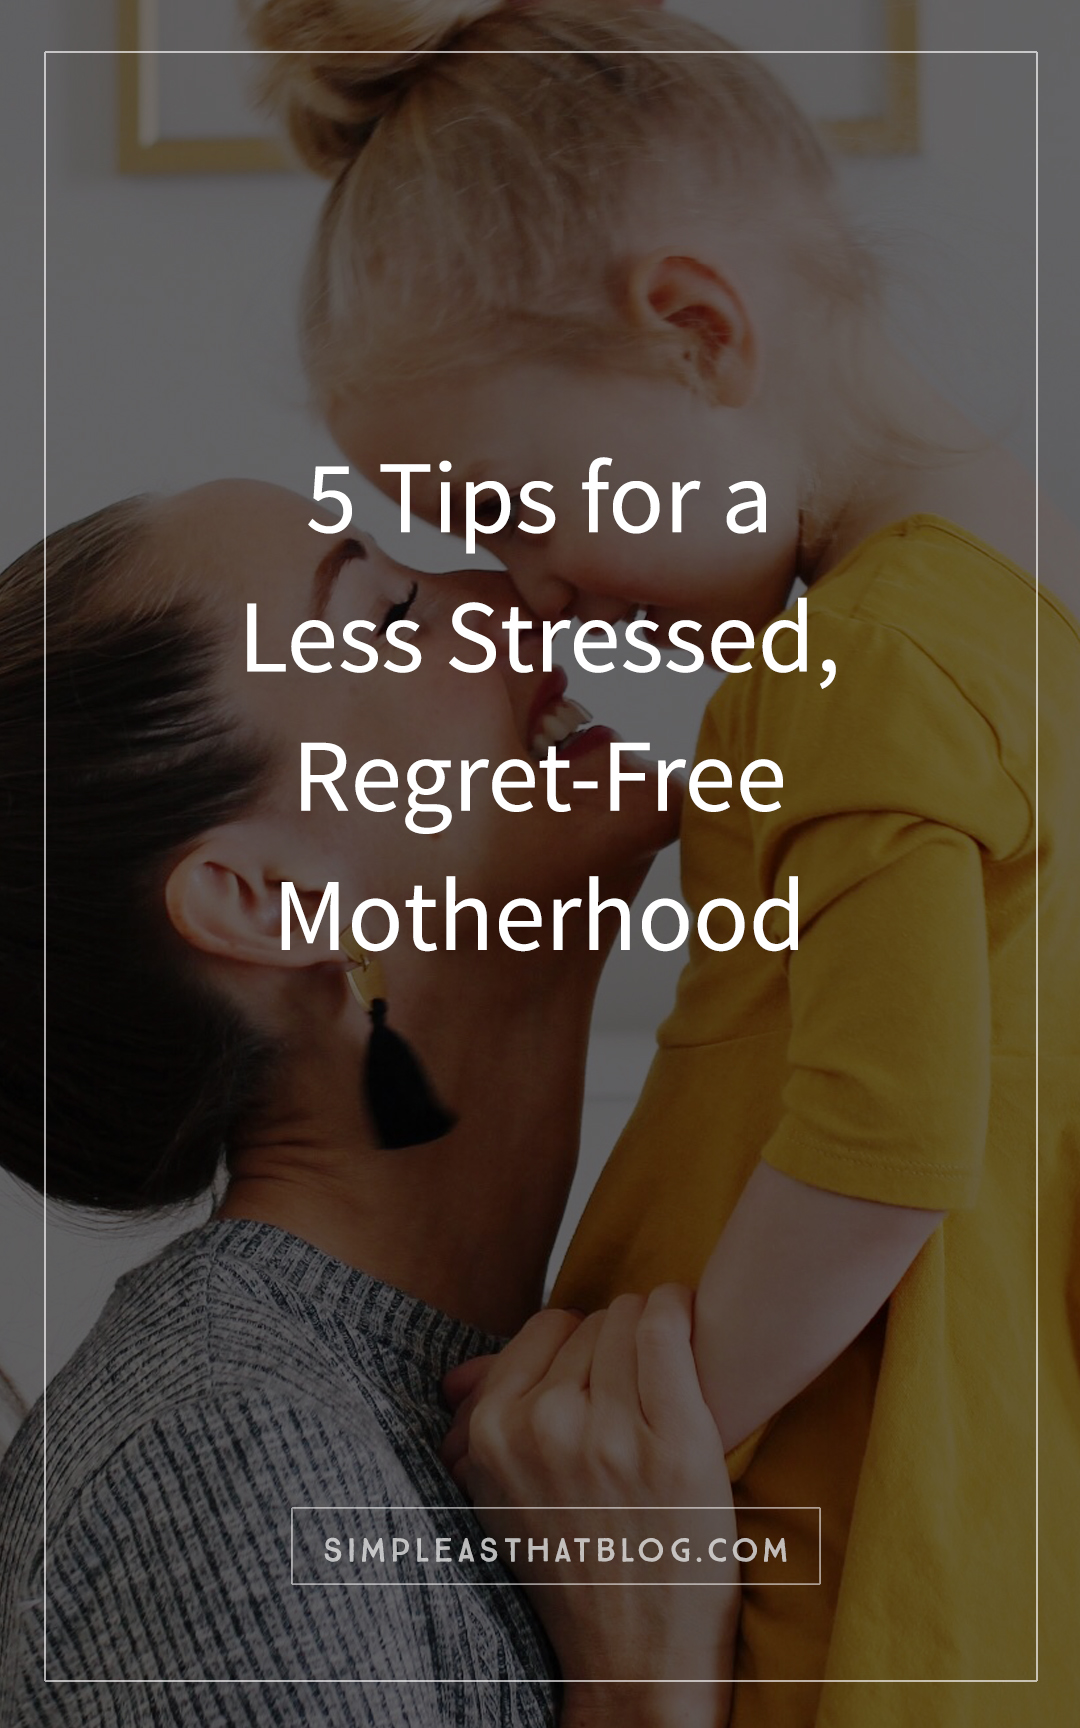 5 tips for a less stressed, regret-free motherhood – even when it seems like there isn't enough time in the day and that balancing it all feels impossible.